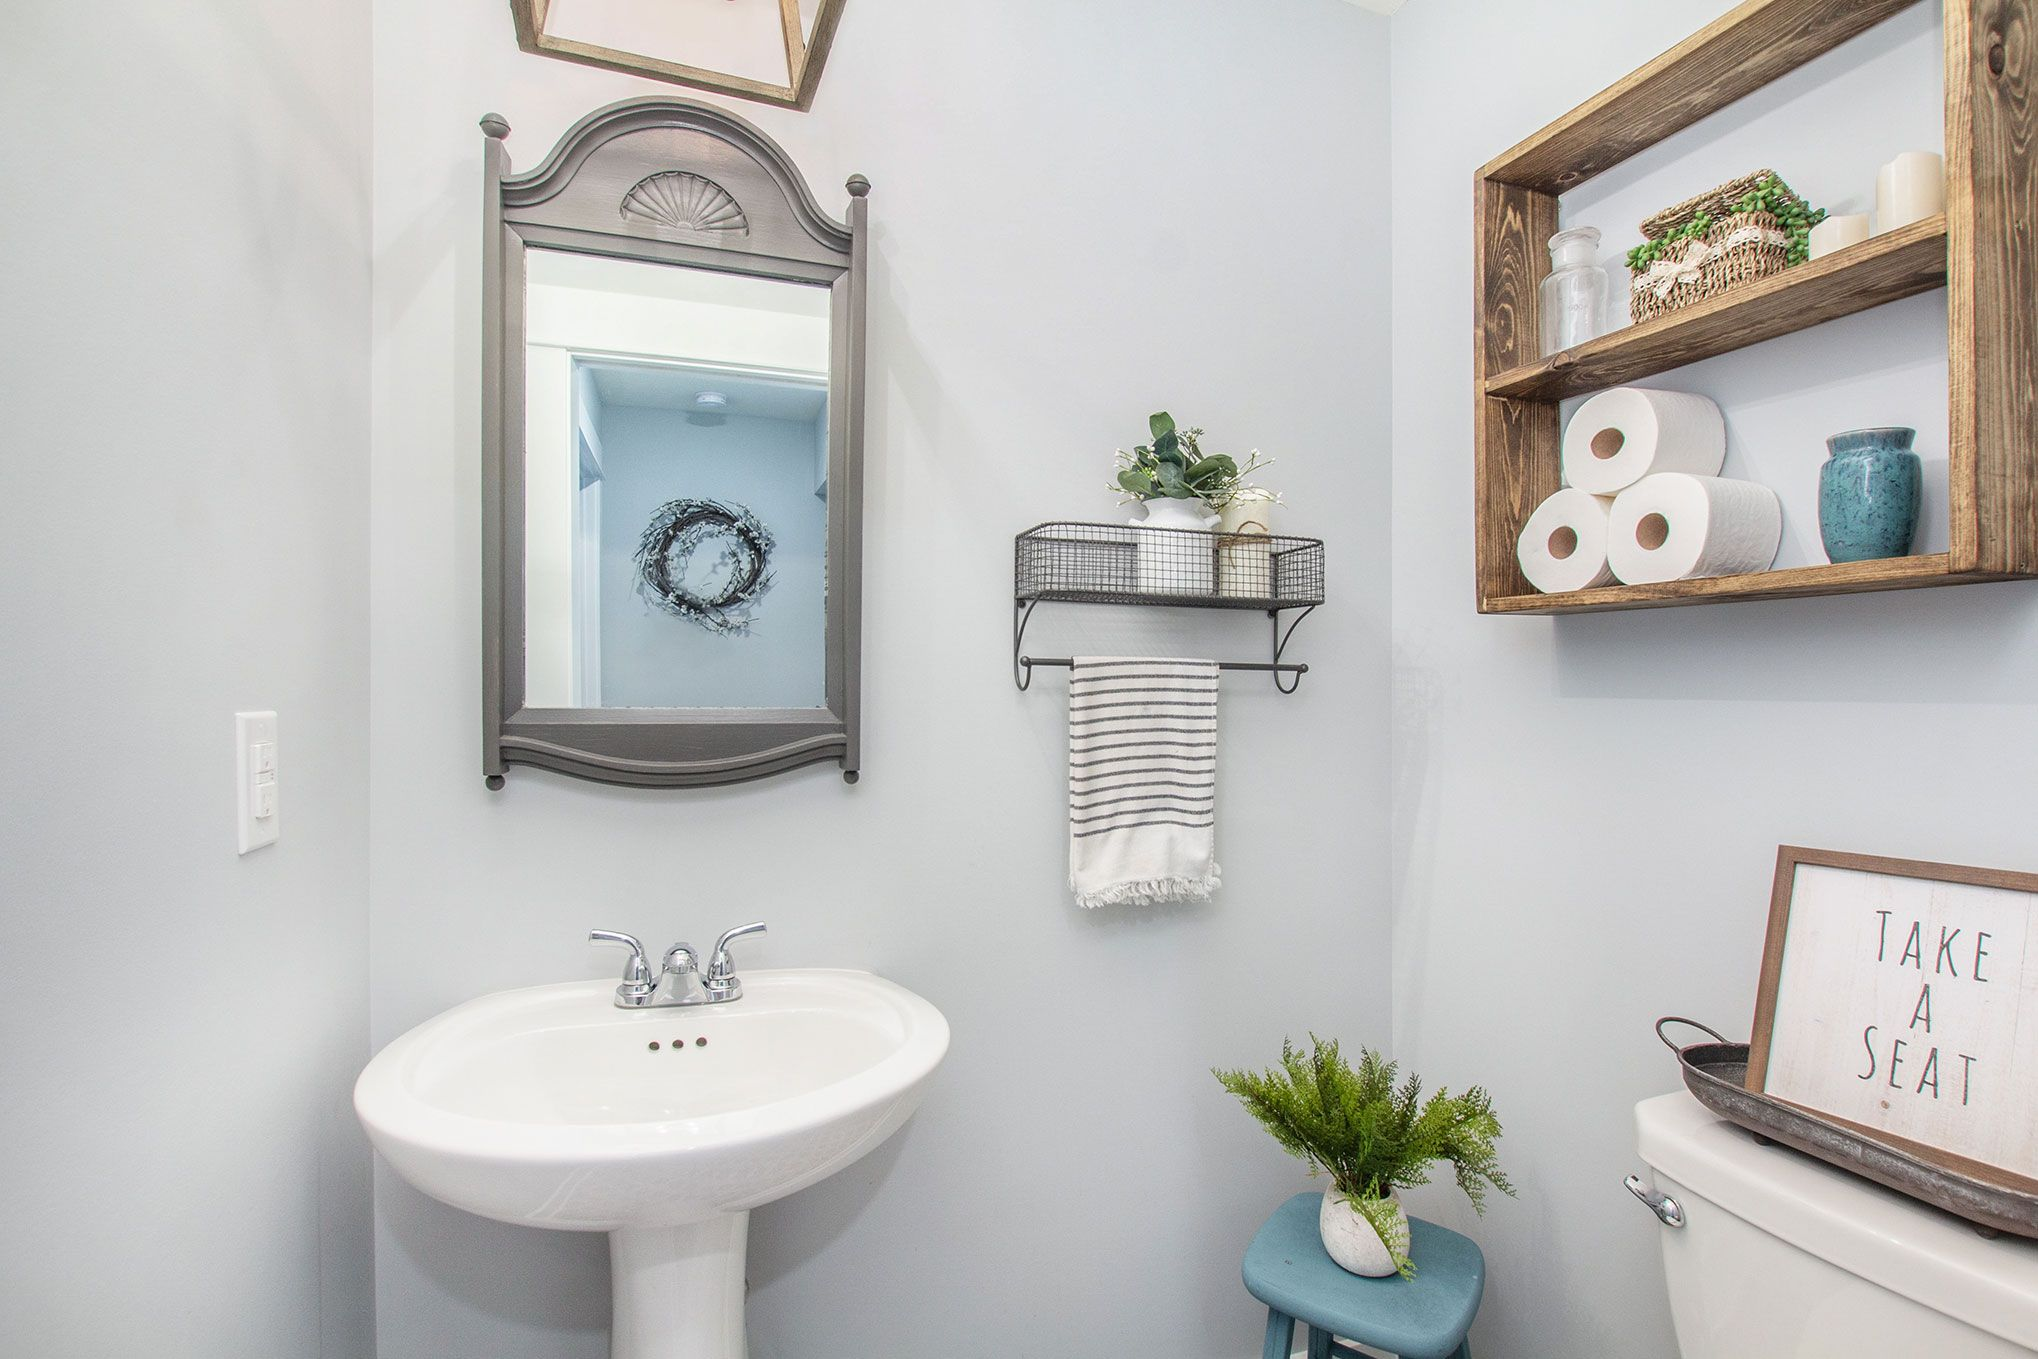 Bathroom featured in The Macatawa Legends Townhomes By Eastbrook Homes Inc. in Grand Rapids, MI